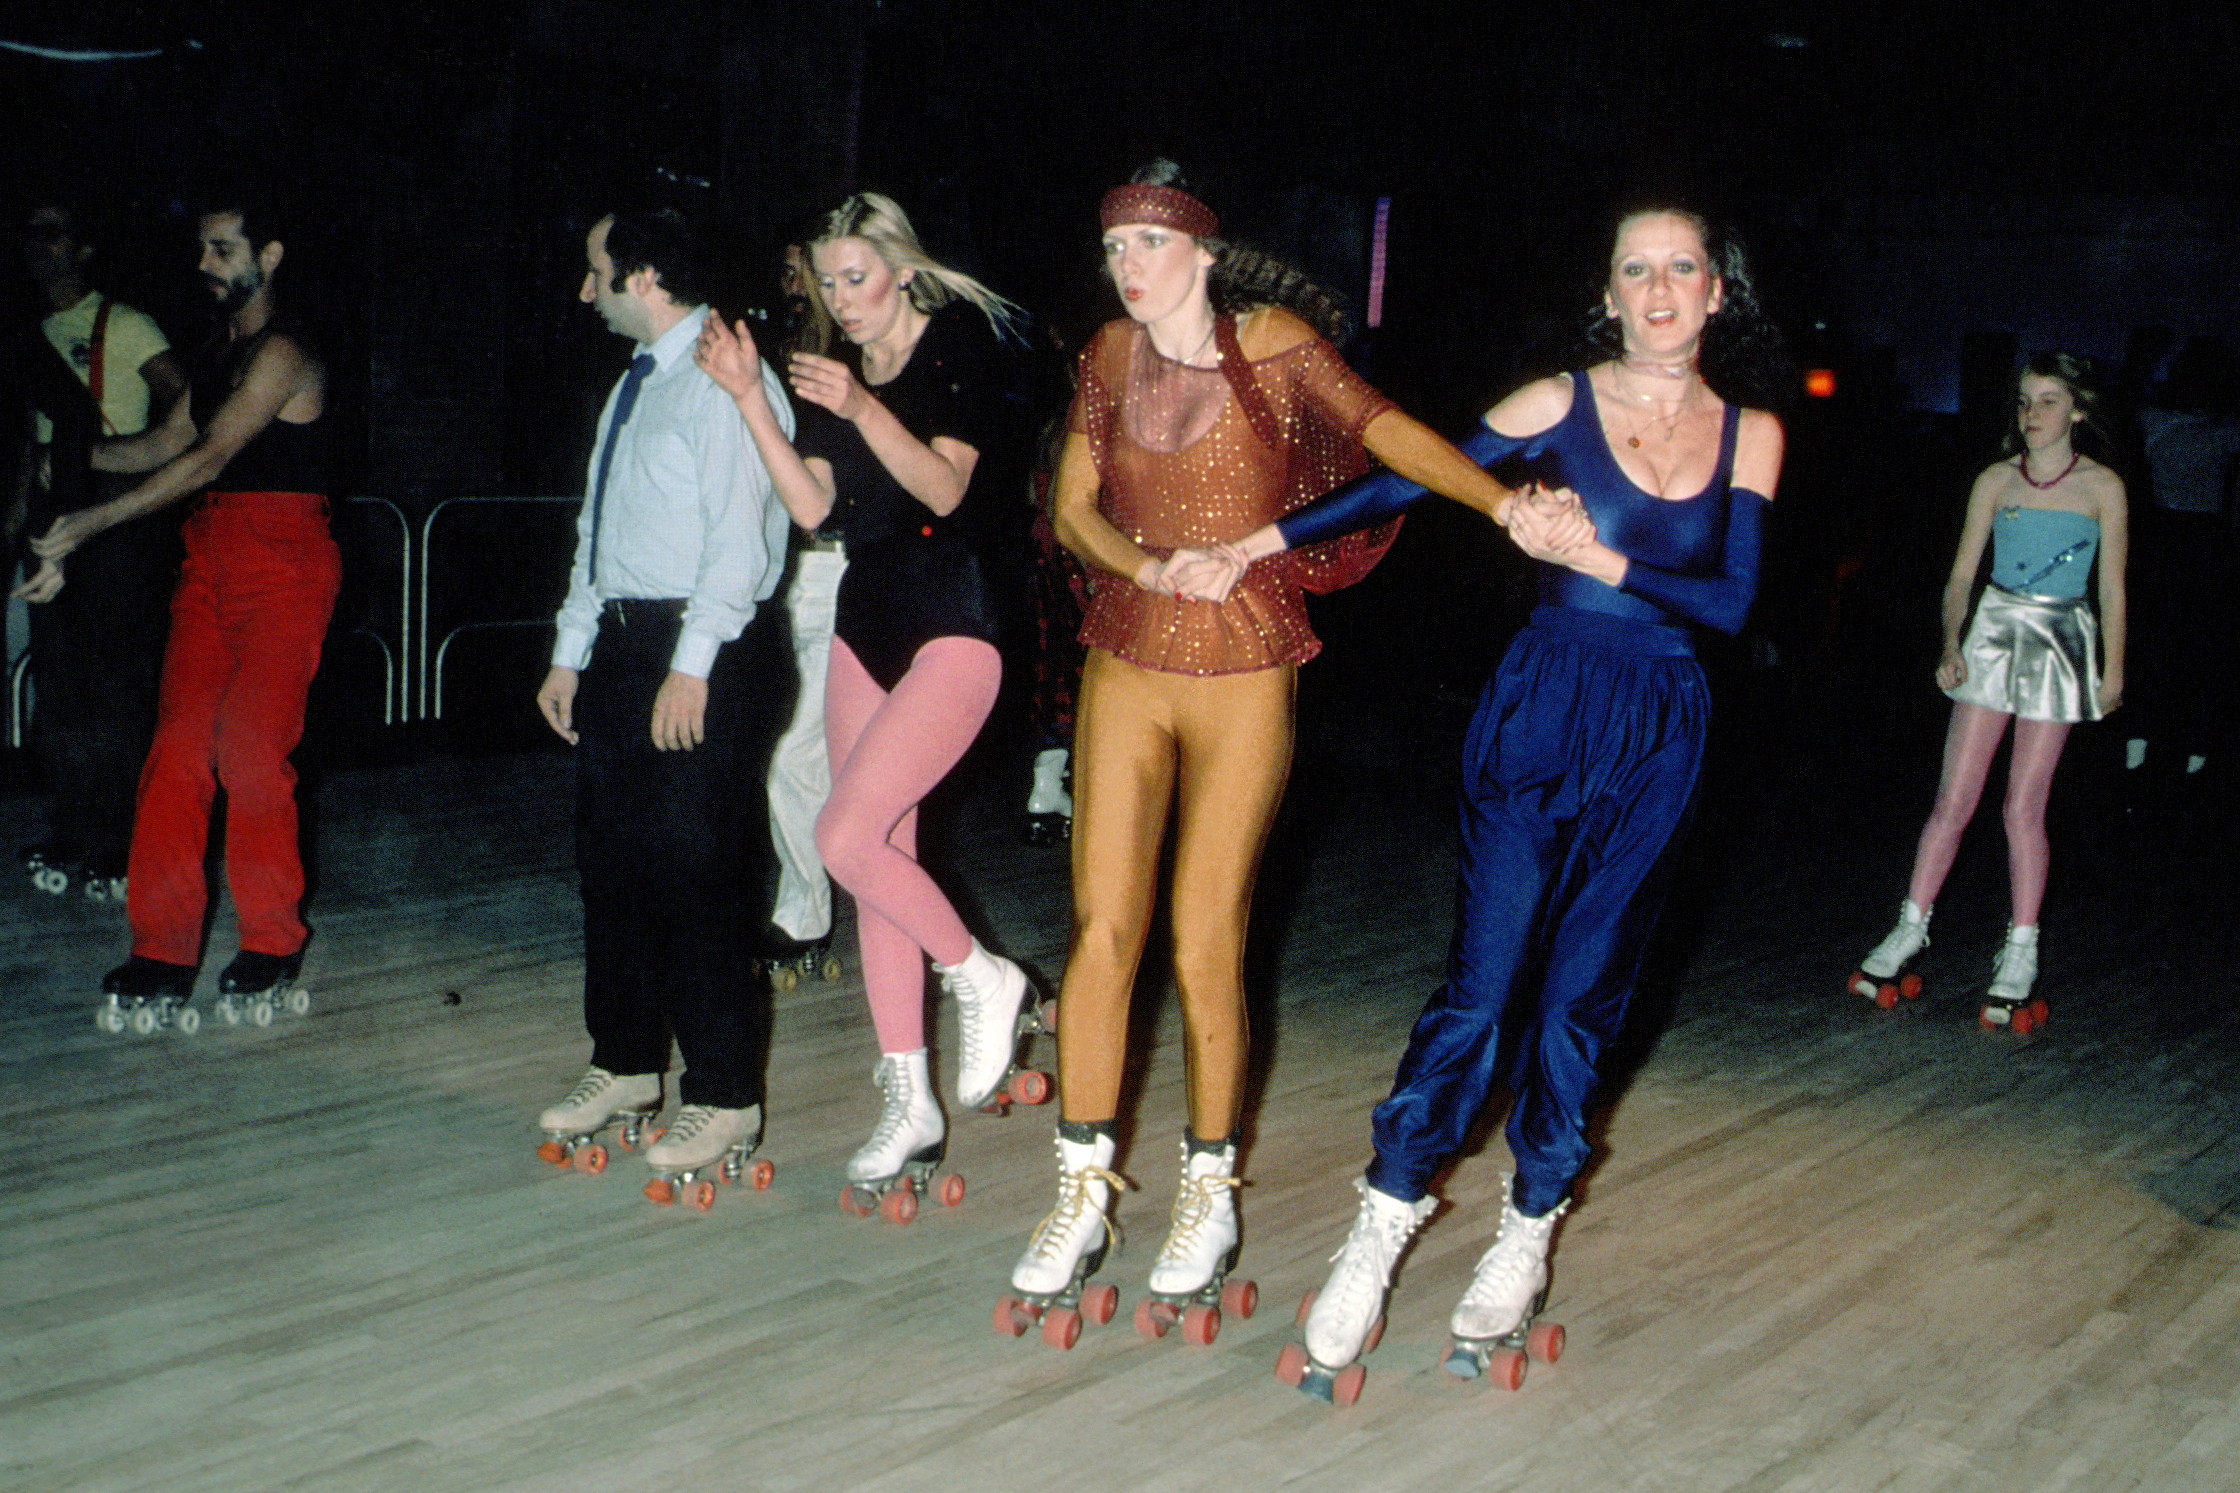 Disco-era roller rink popping up at Union Station in August